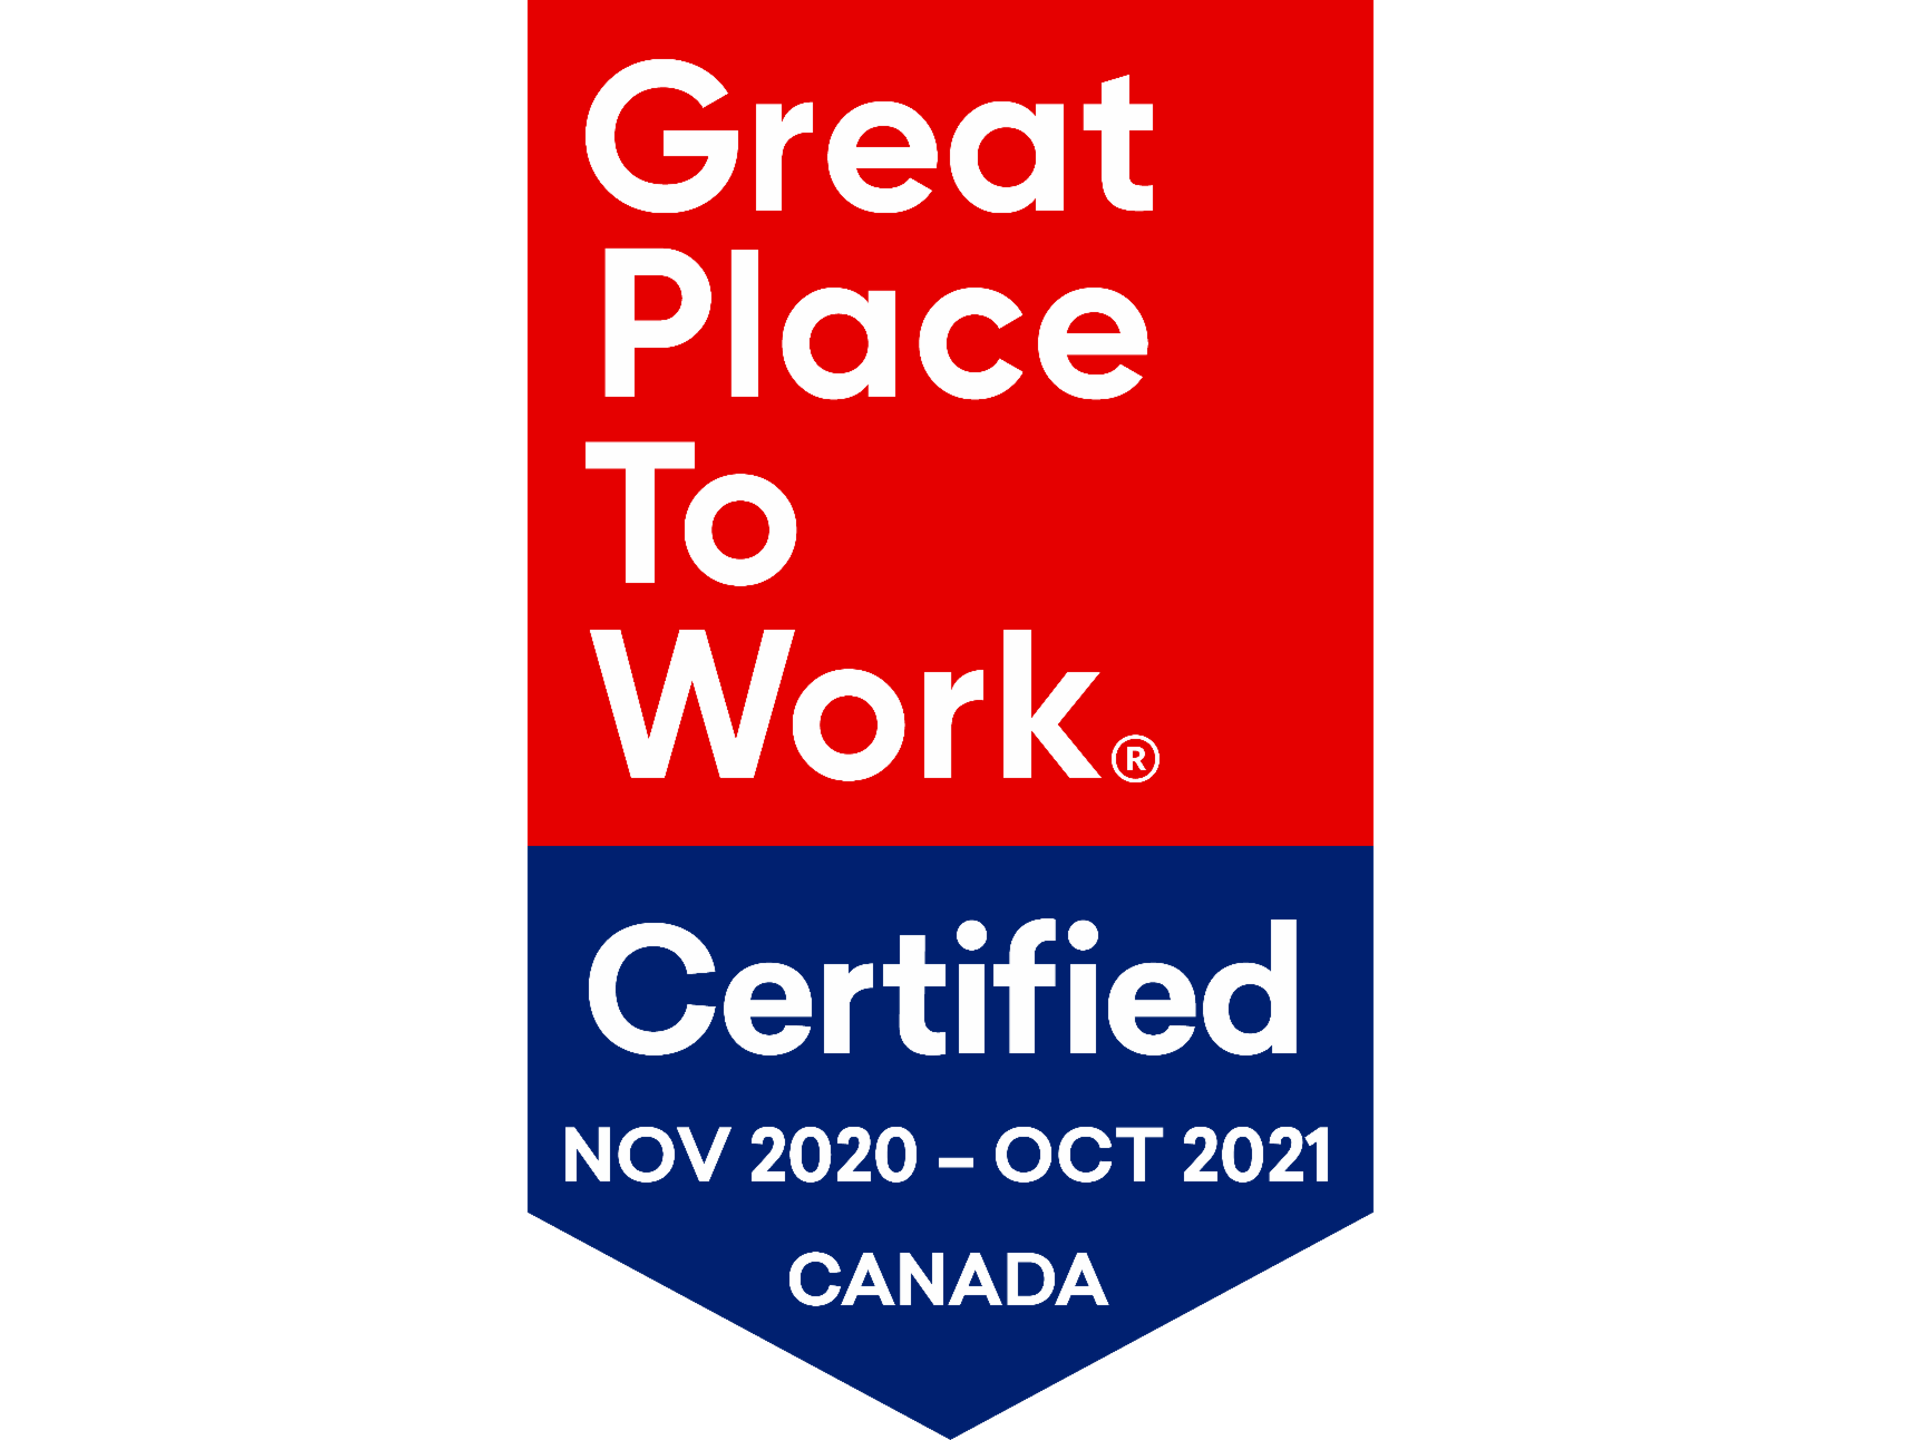 Great Place to Work-certifiedTM company in Canada for 2020